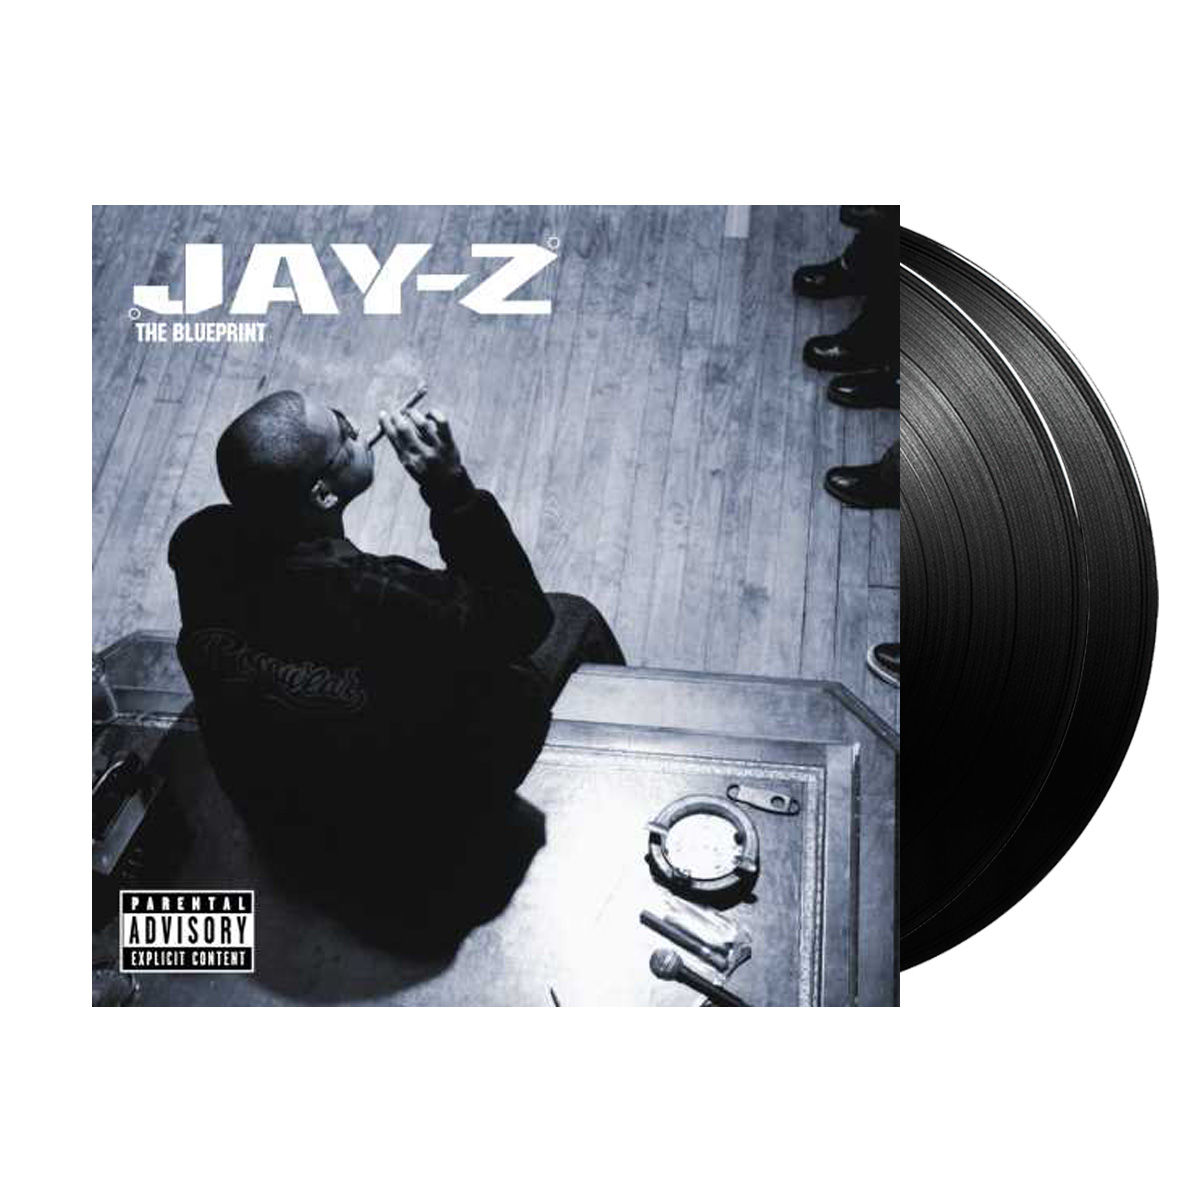 Respect the classics jay z the blueprint malvernweather Image collections